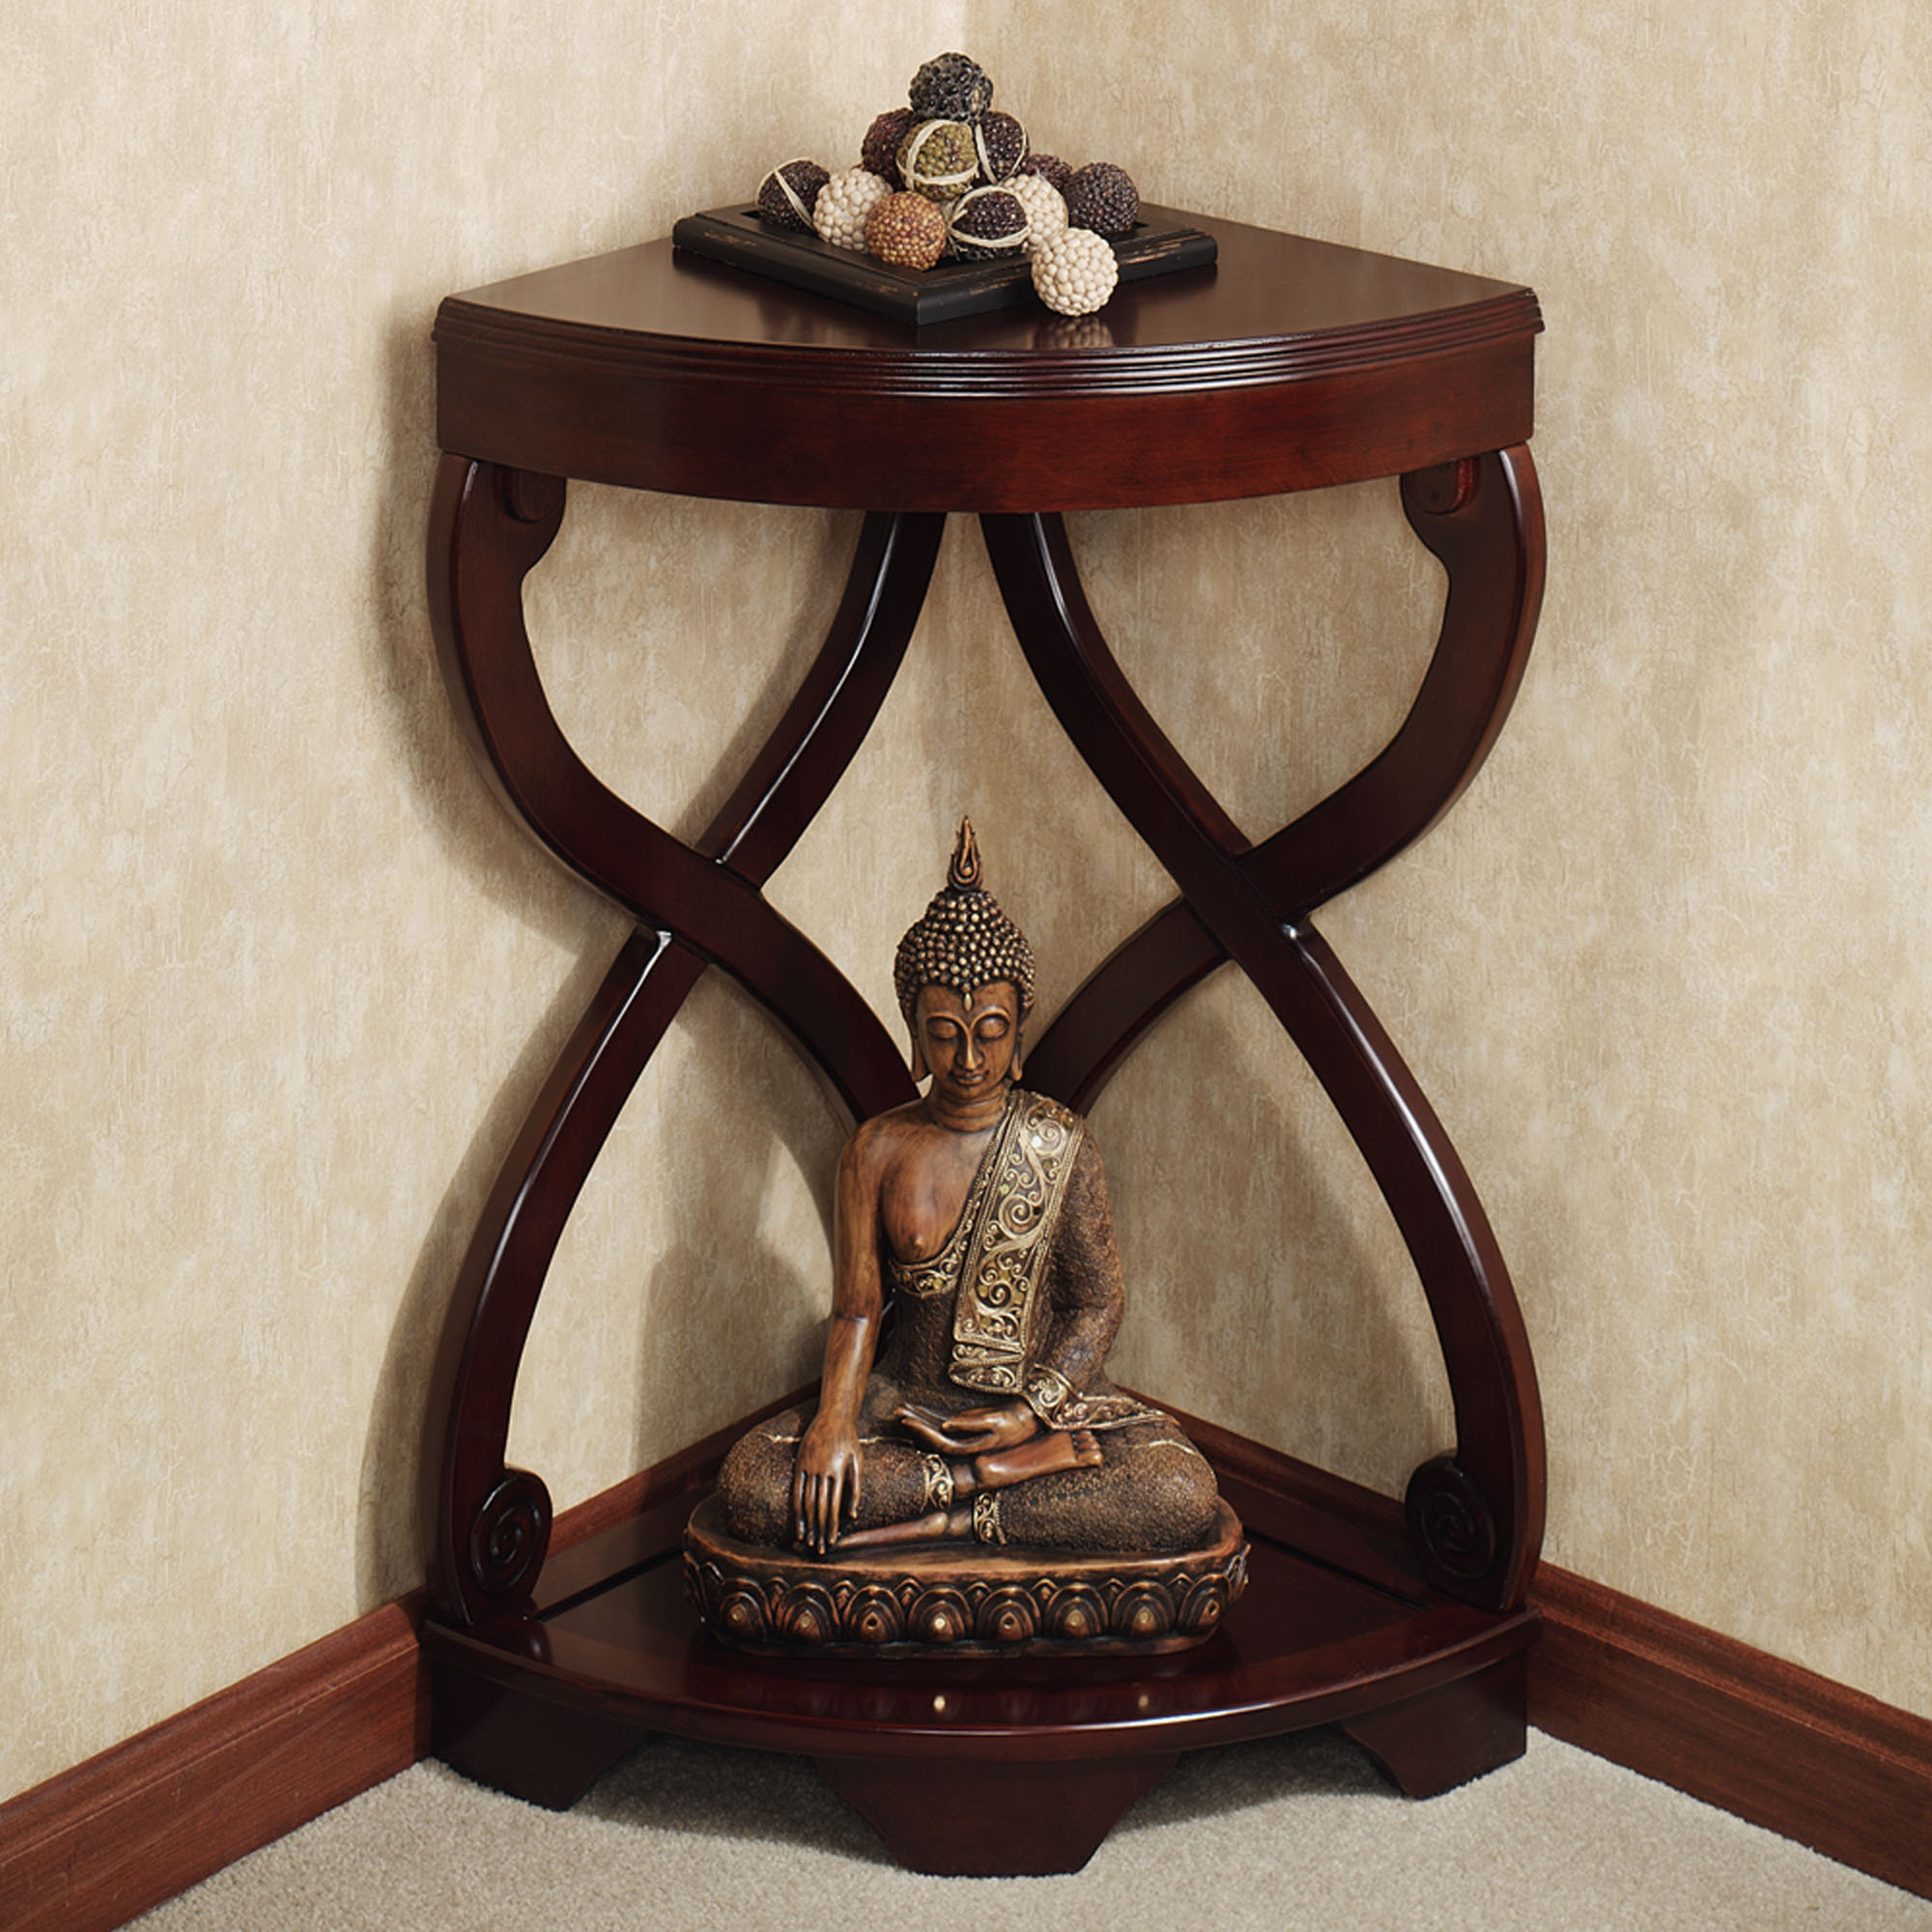 unique accent tables for living room small house interior design furniture corner espresso color paxton wooden table and buddha statue awesome using drawer not round foyer west